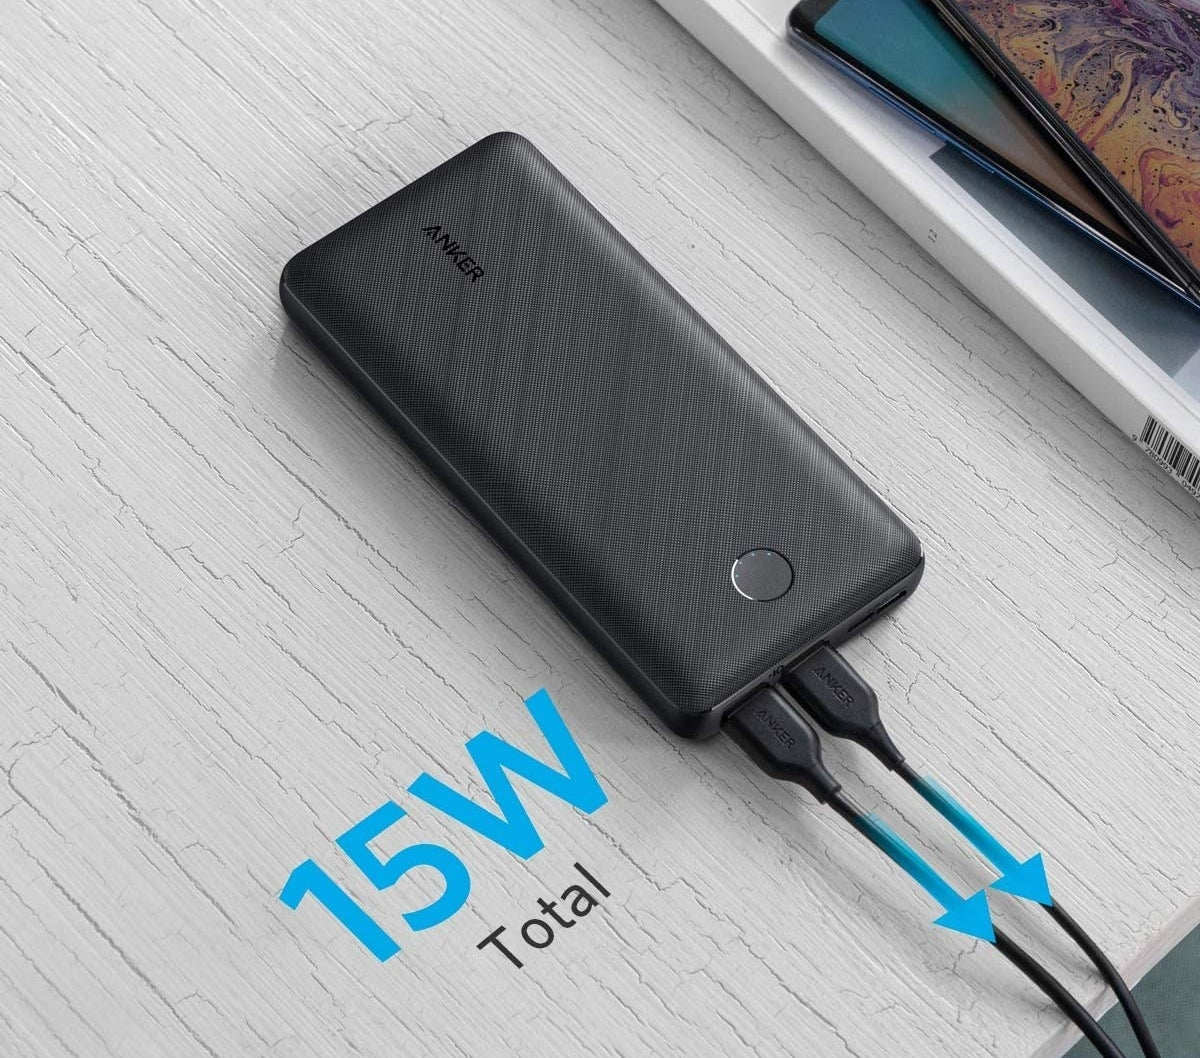 A power bank with two cords plugged in